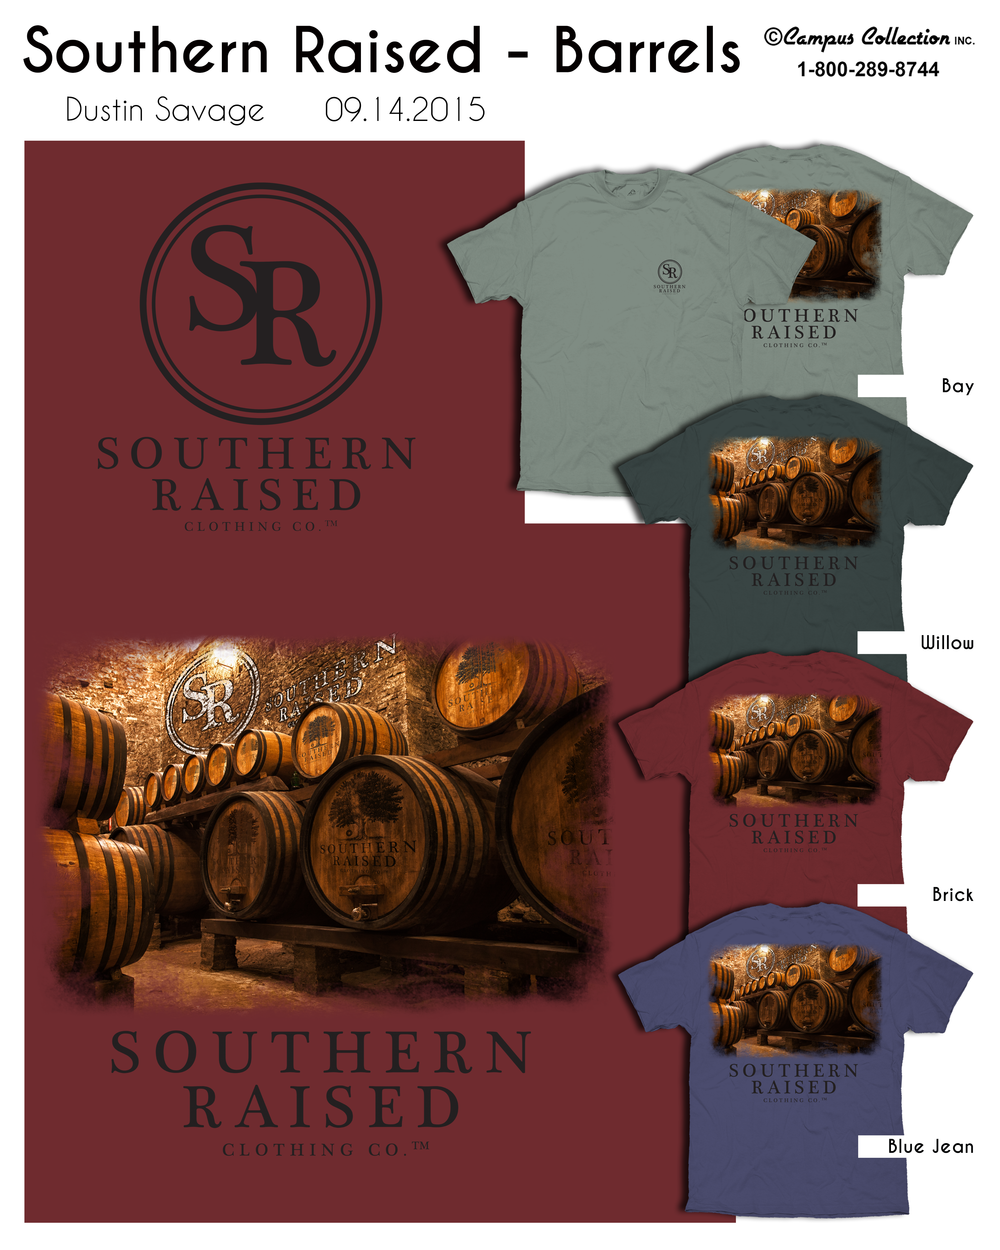 Southern Raised_Barrelsv2.png